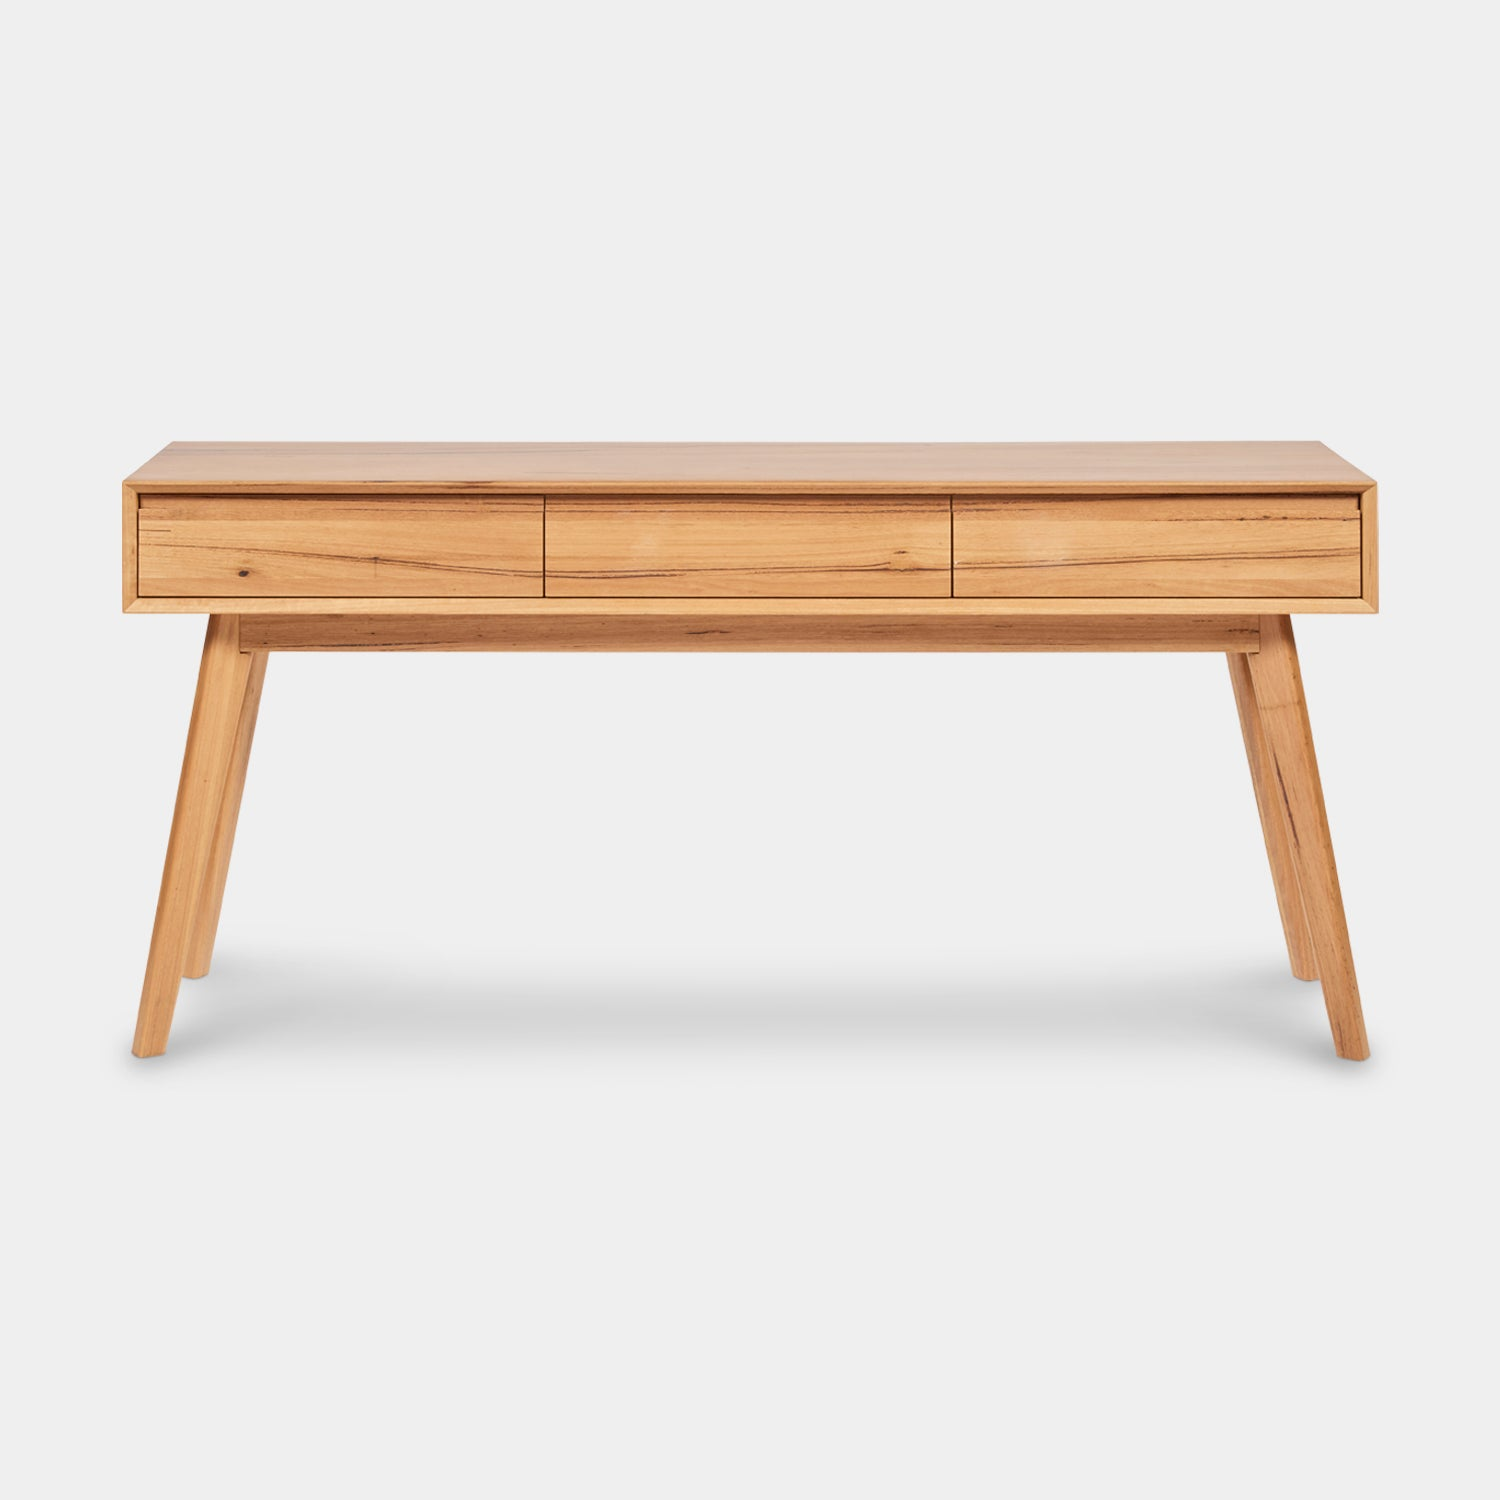 Messmate-Indoor-Dining-Console-Avalon-r1